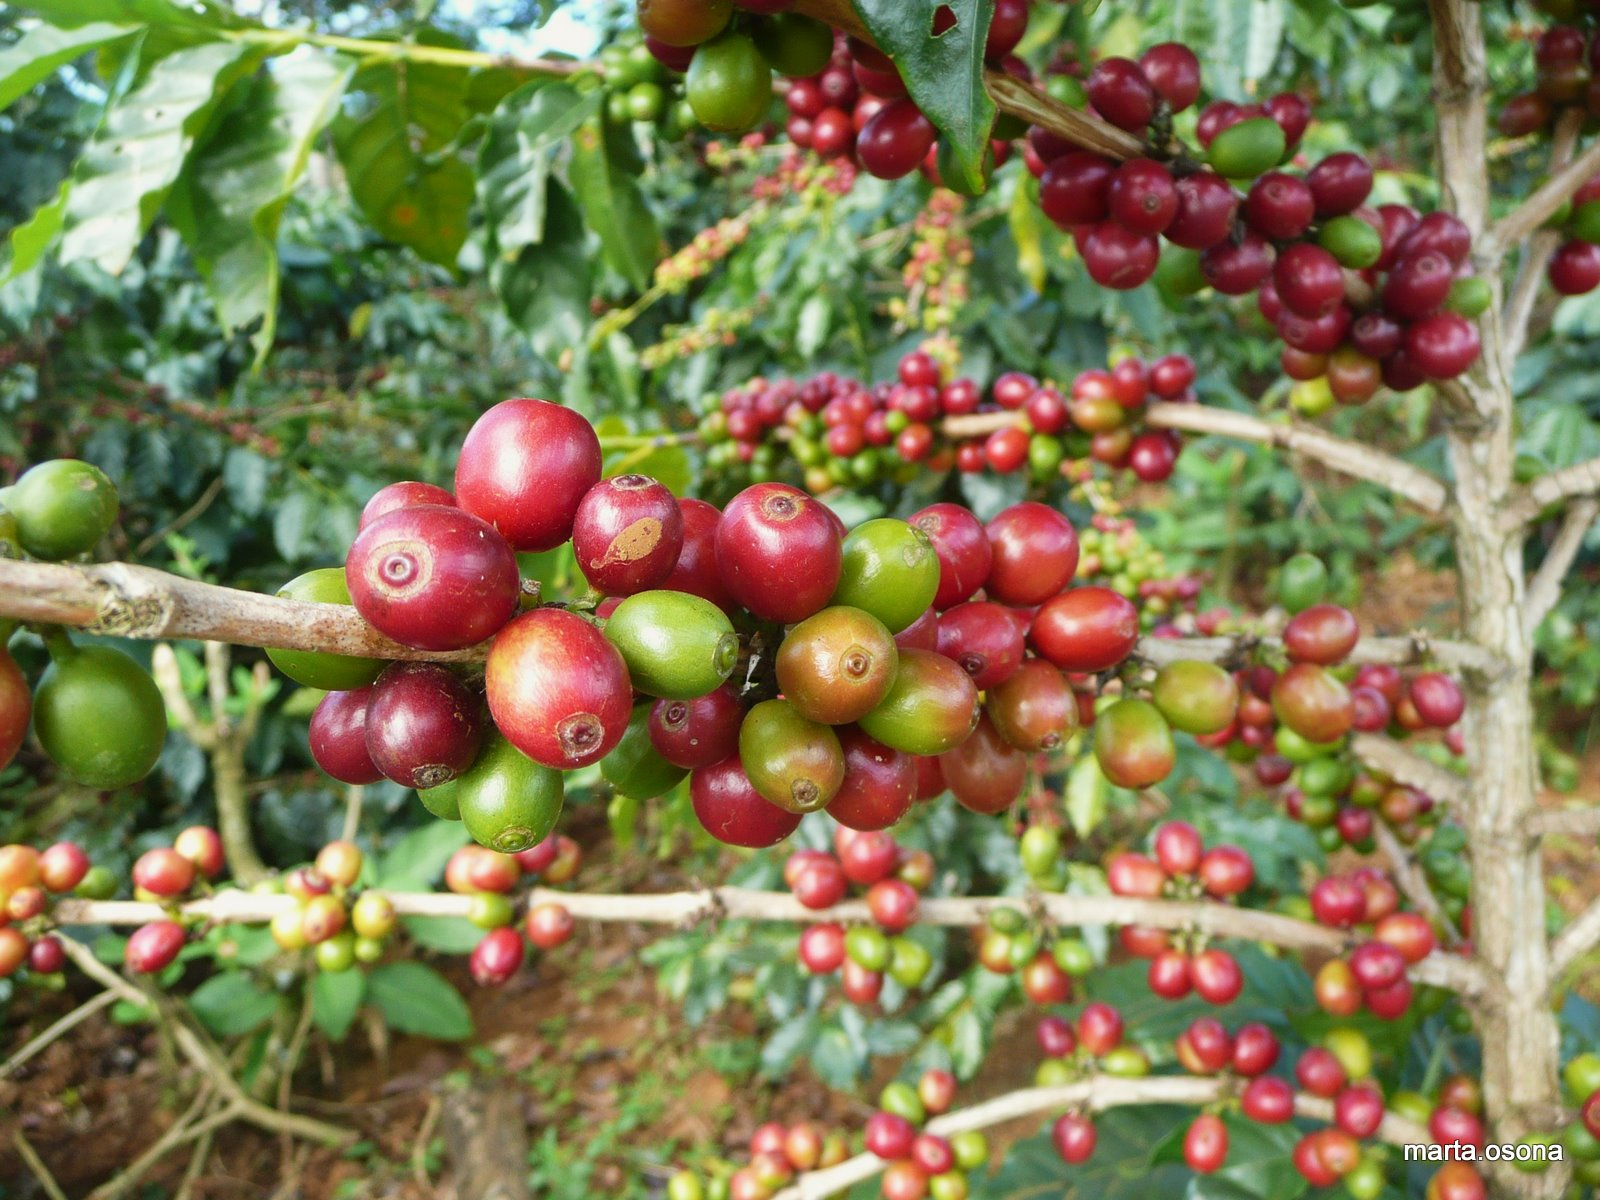 Costa Coffee Arabica Robusta Brazil Robusta Coffee Prices Forecast 2016 Today Coffee